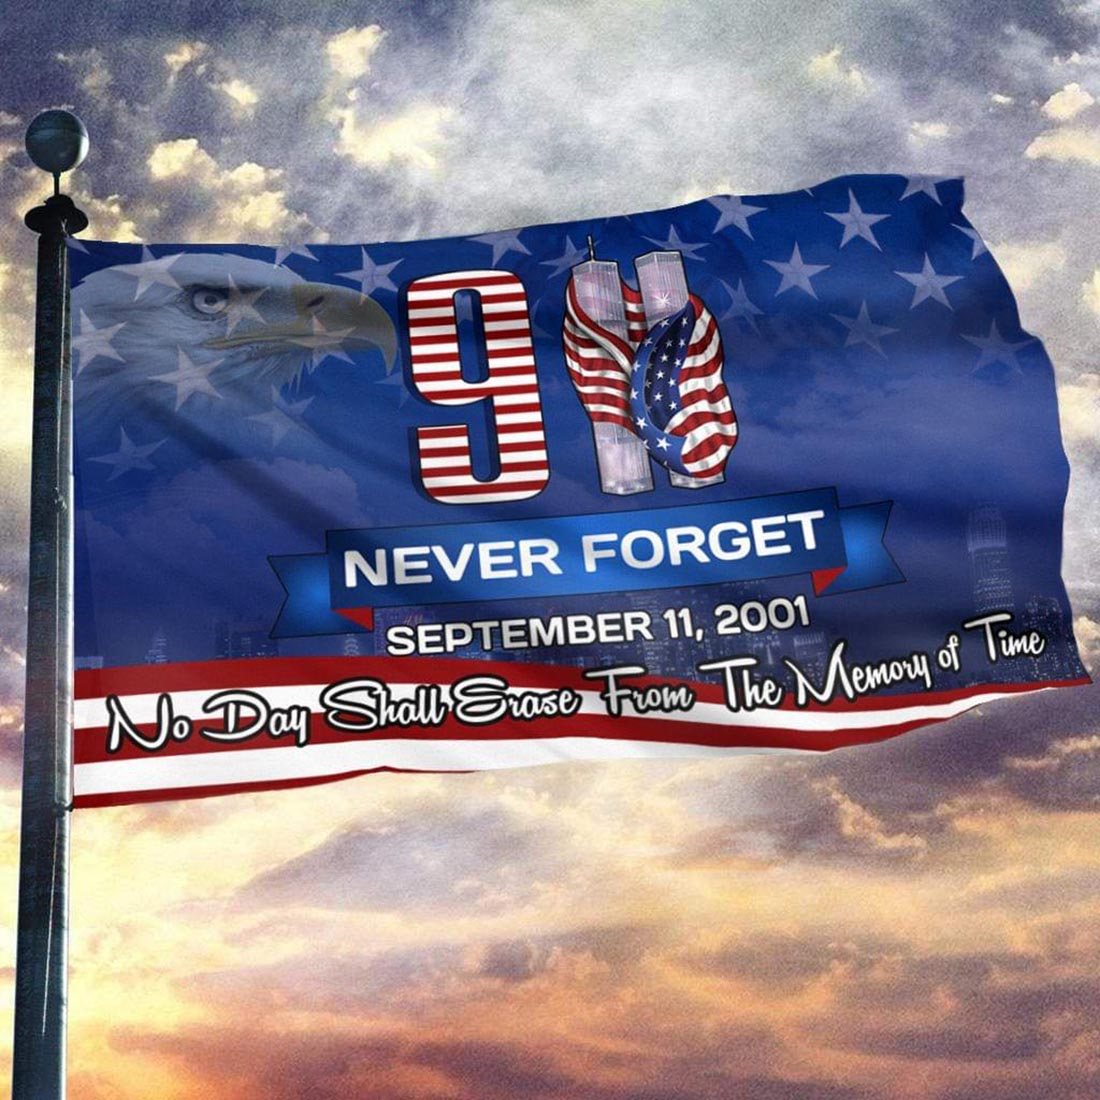 No day shall erase from the memory of time 9 11 Eagle flag